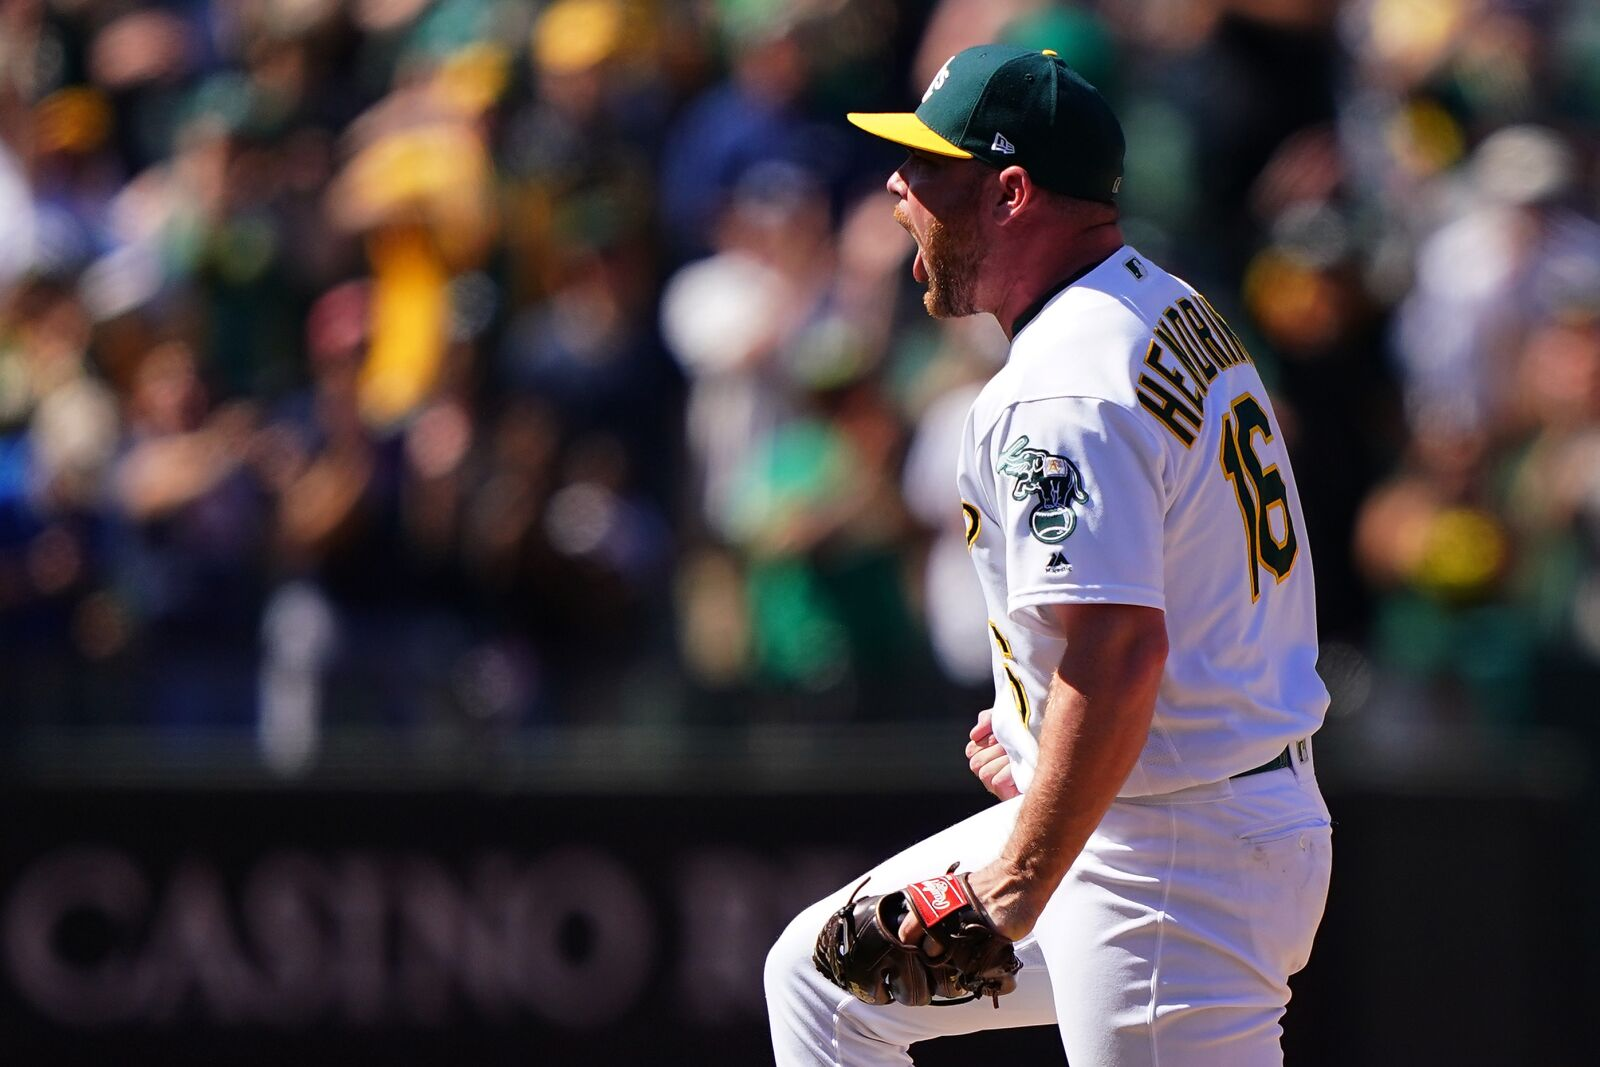 Oakland Athletics: Liam Hendriks unlikely road to the All